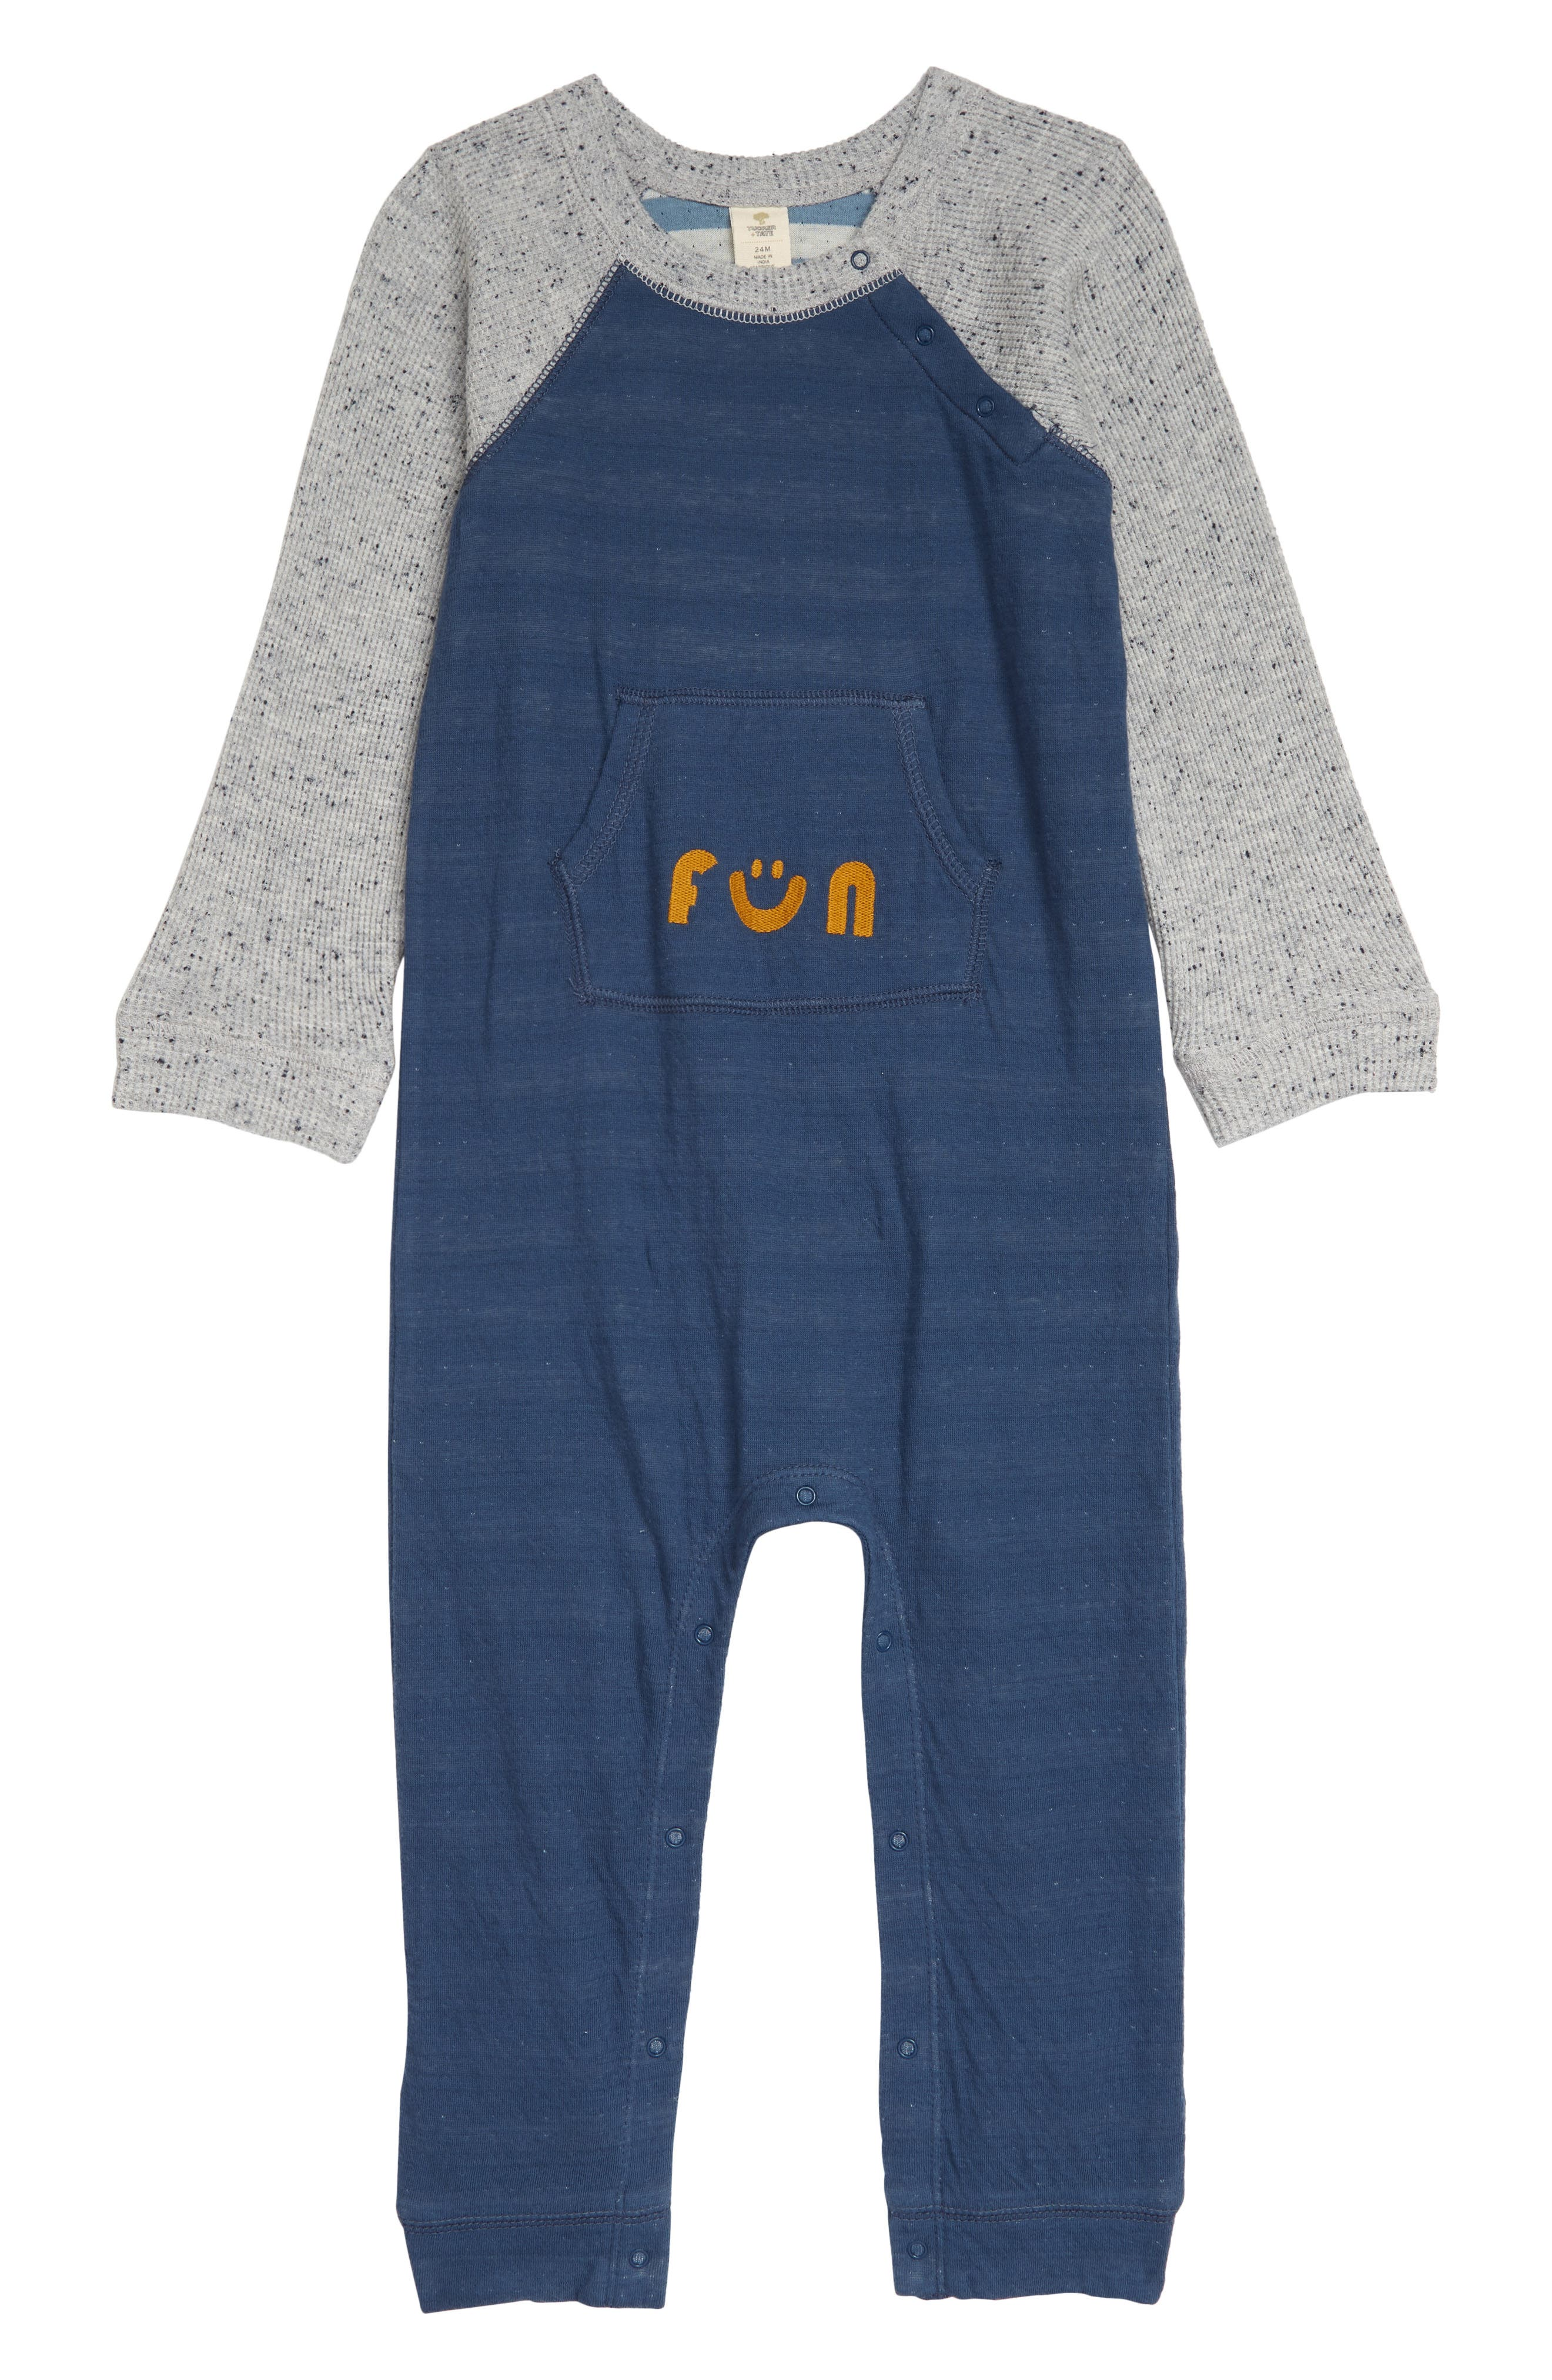 It\\\'s all spelled out-your little one is sure to have fun in this comfy cotton romper styled with flecked waffle-stitch sleeves. Snaps at the shoulder and between the legs make diaper changes a cinch. Style Name: Tucker + Tate Fun Waffle Sleeve Colorblock Romper (Baby). Style Number: 6011226. Available in stores.